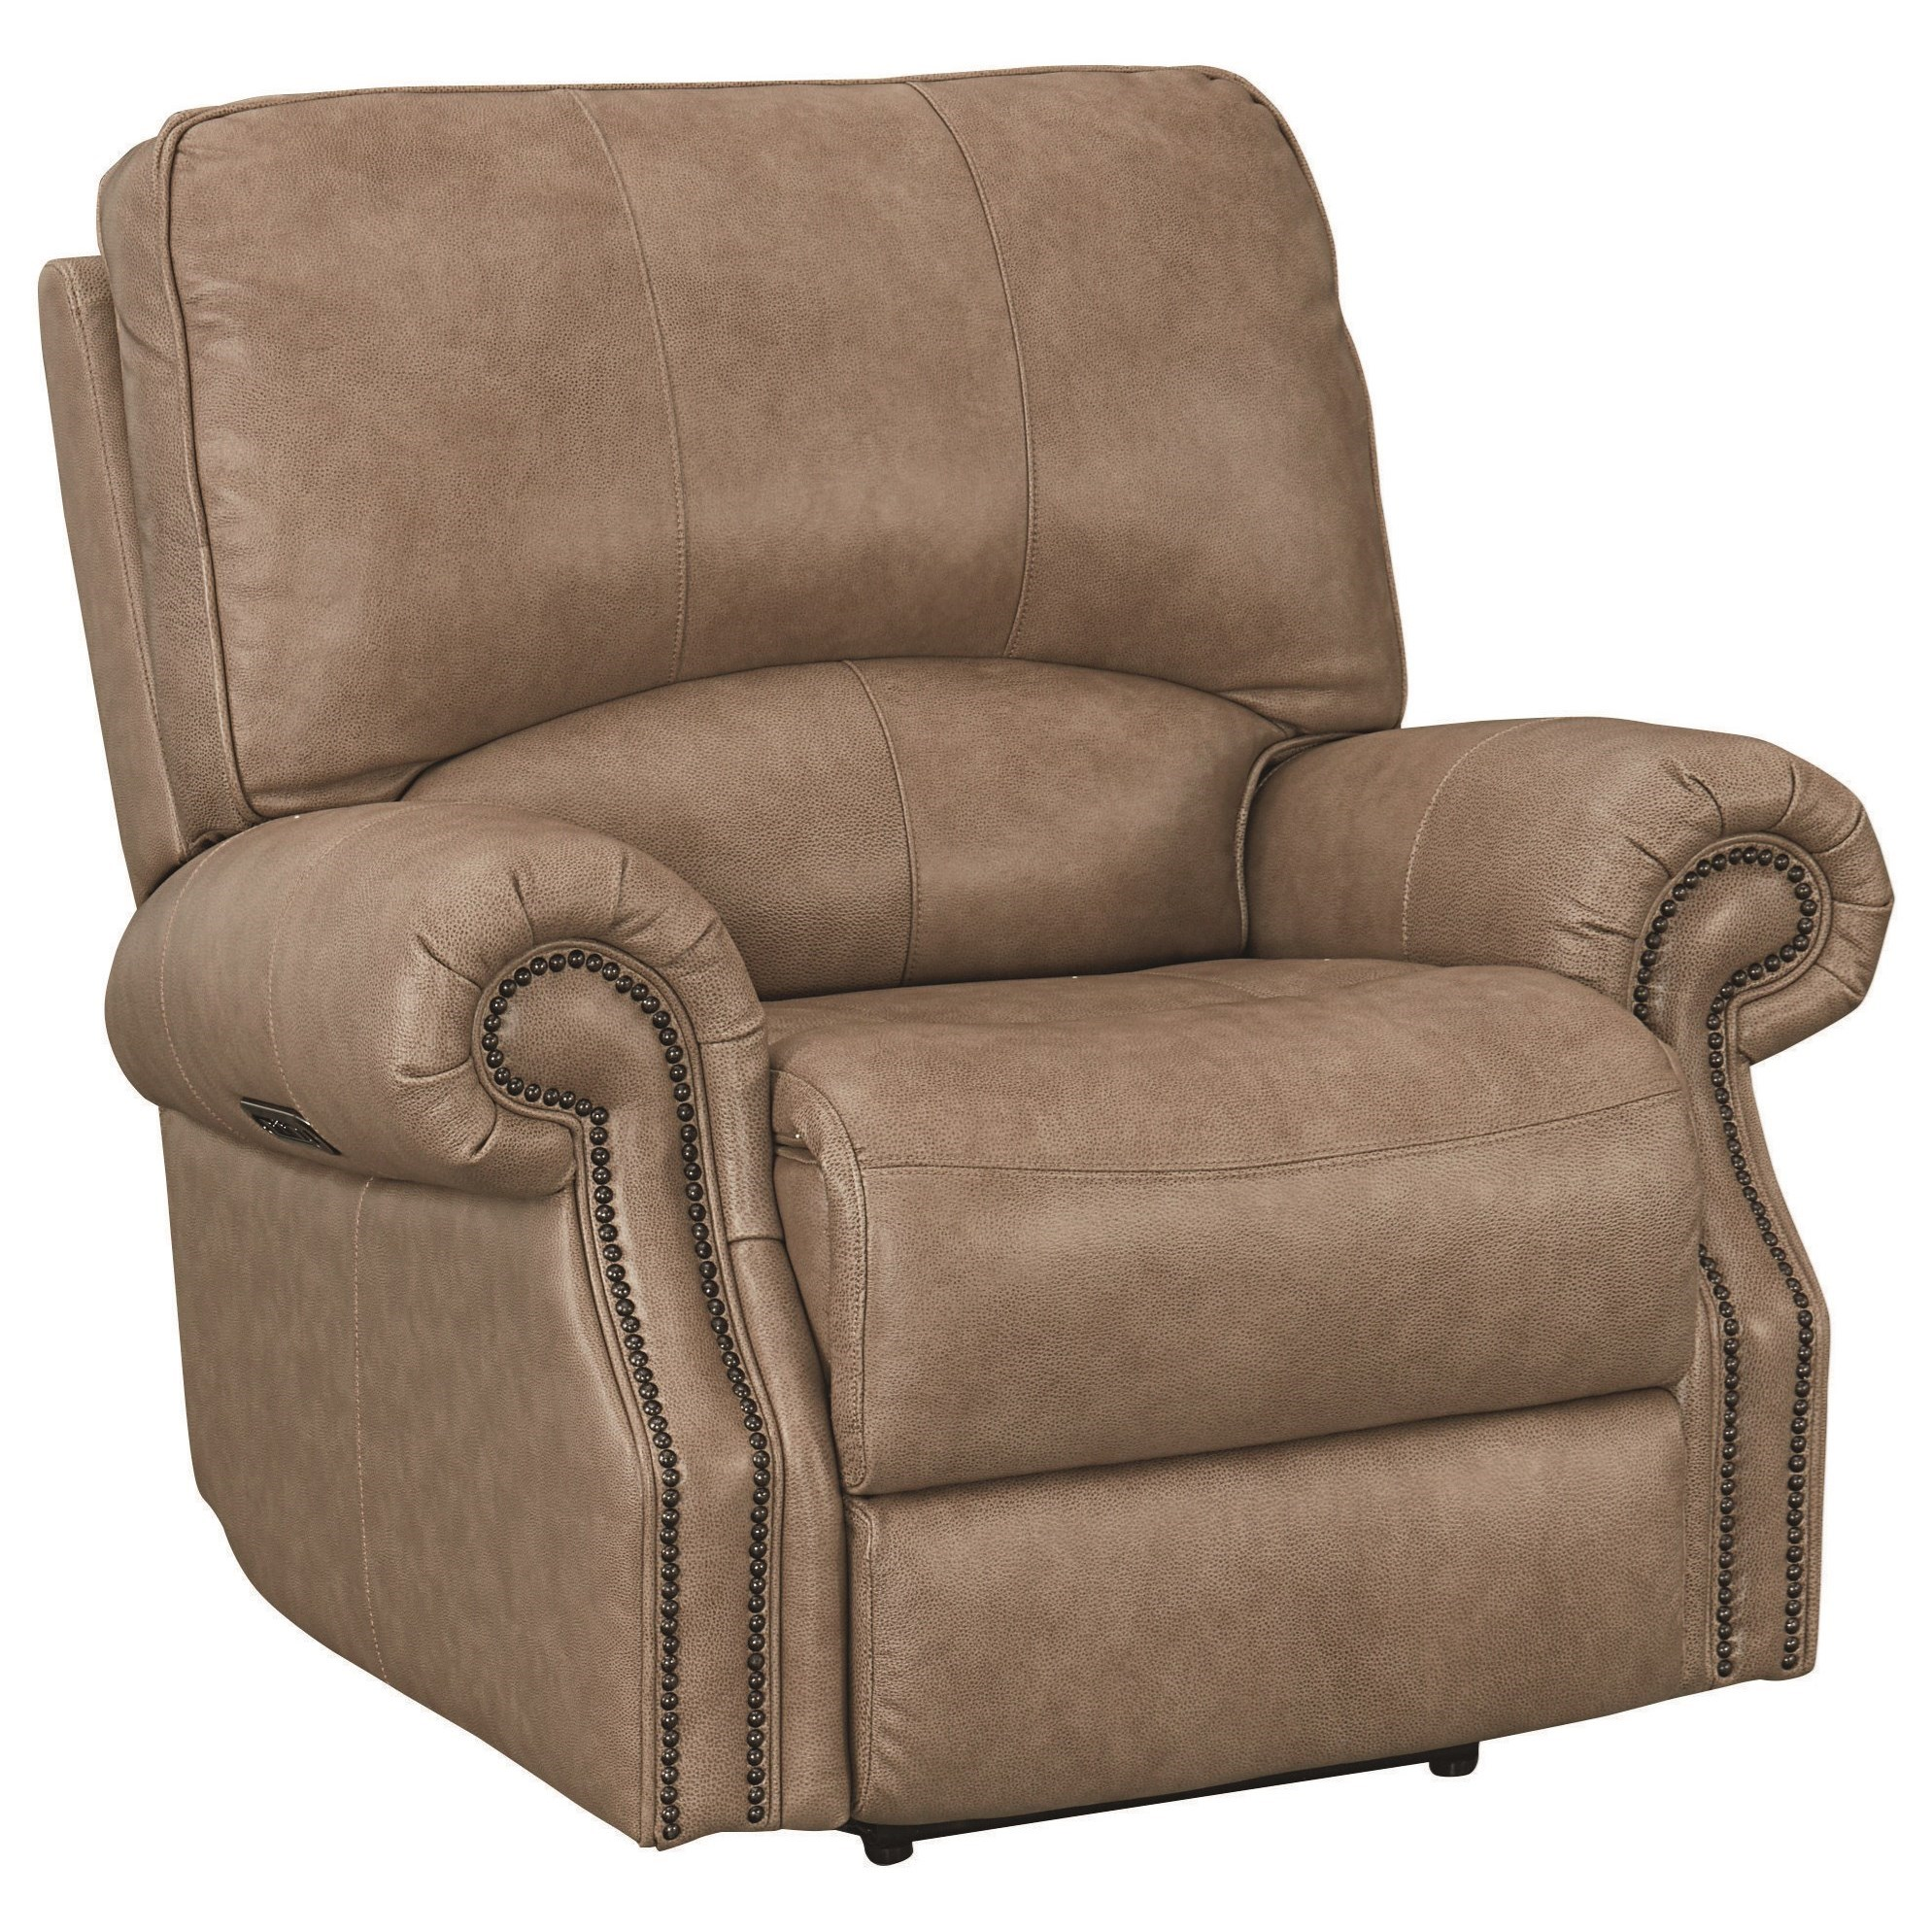 Wallsaver Recliner